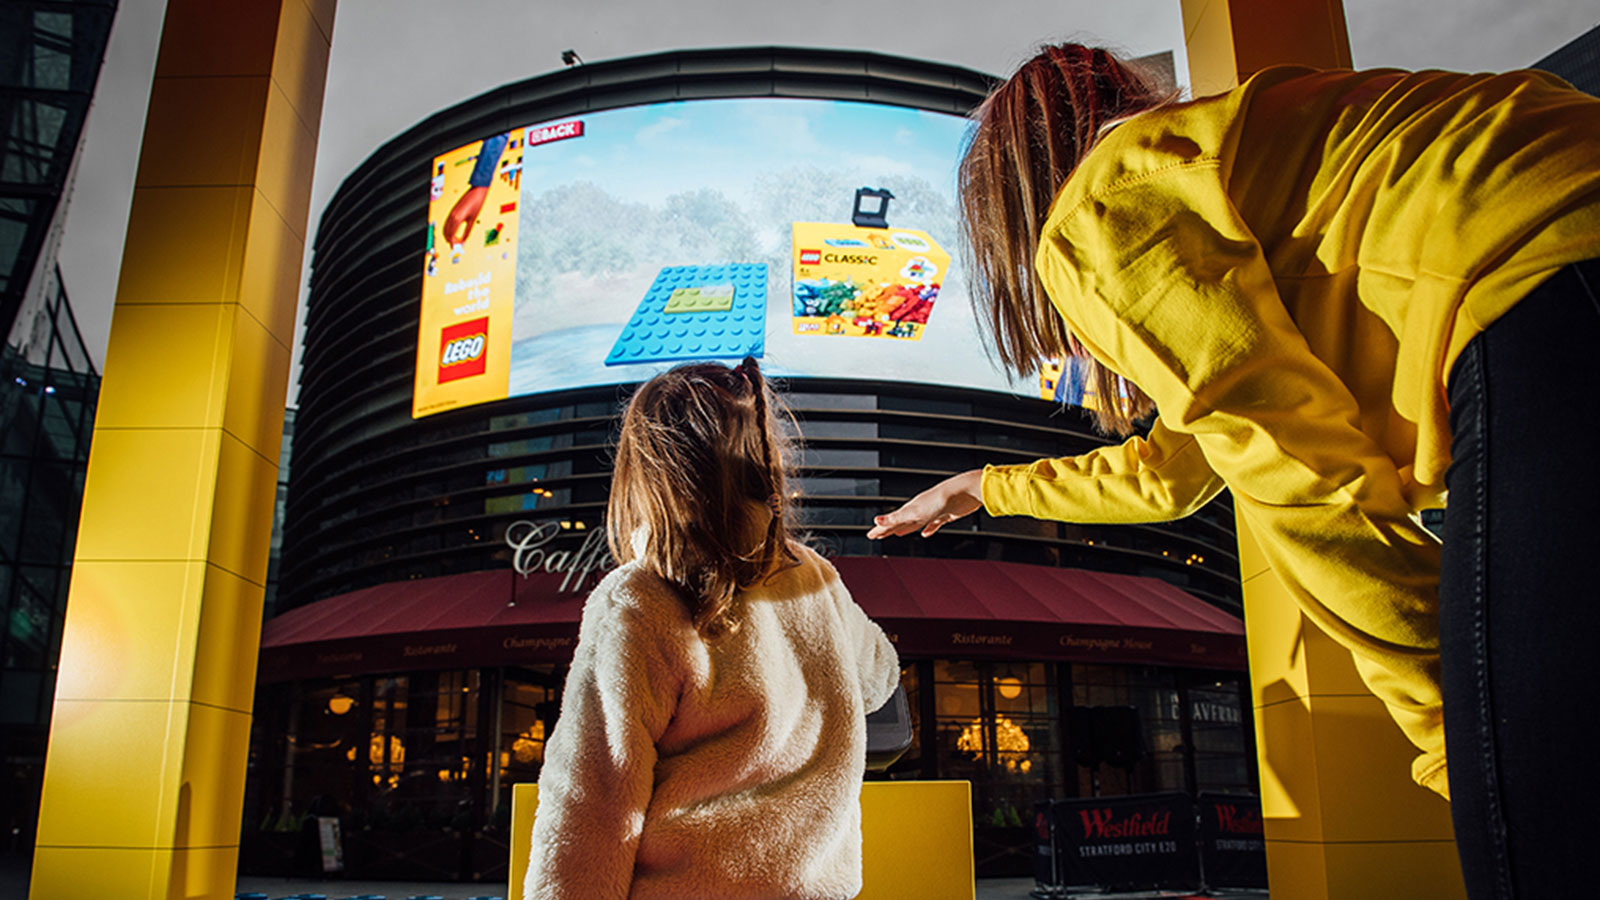 LEGO interactive billboard